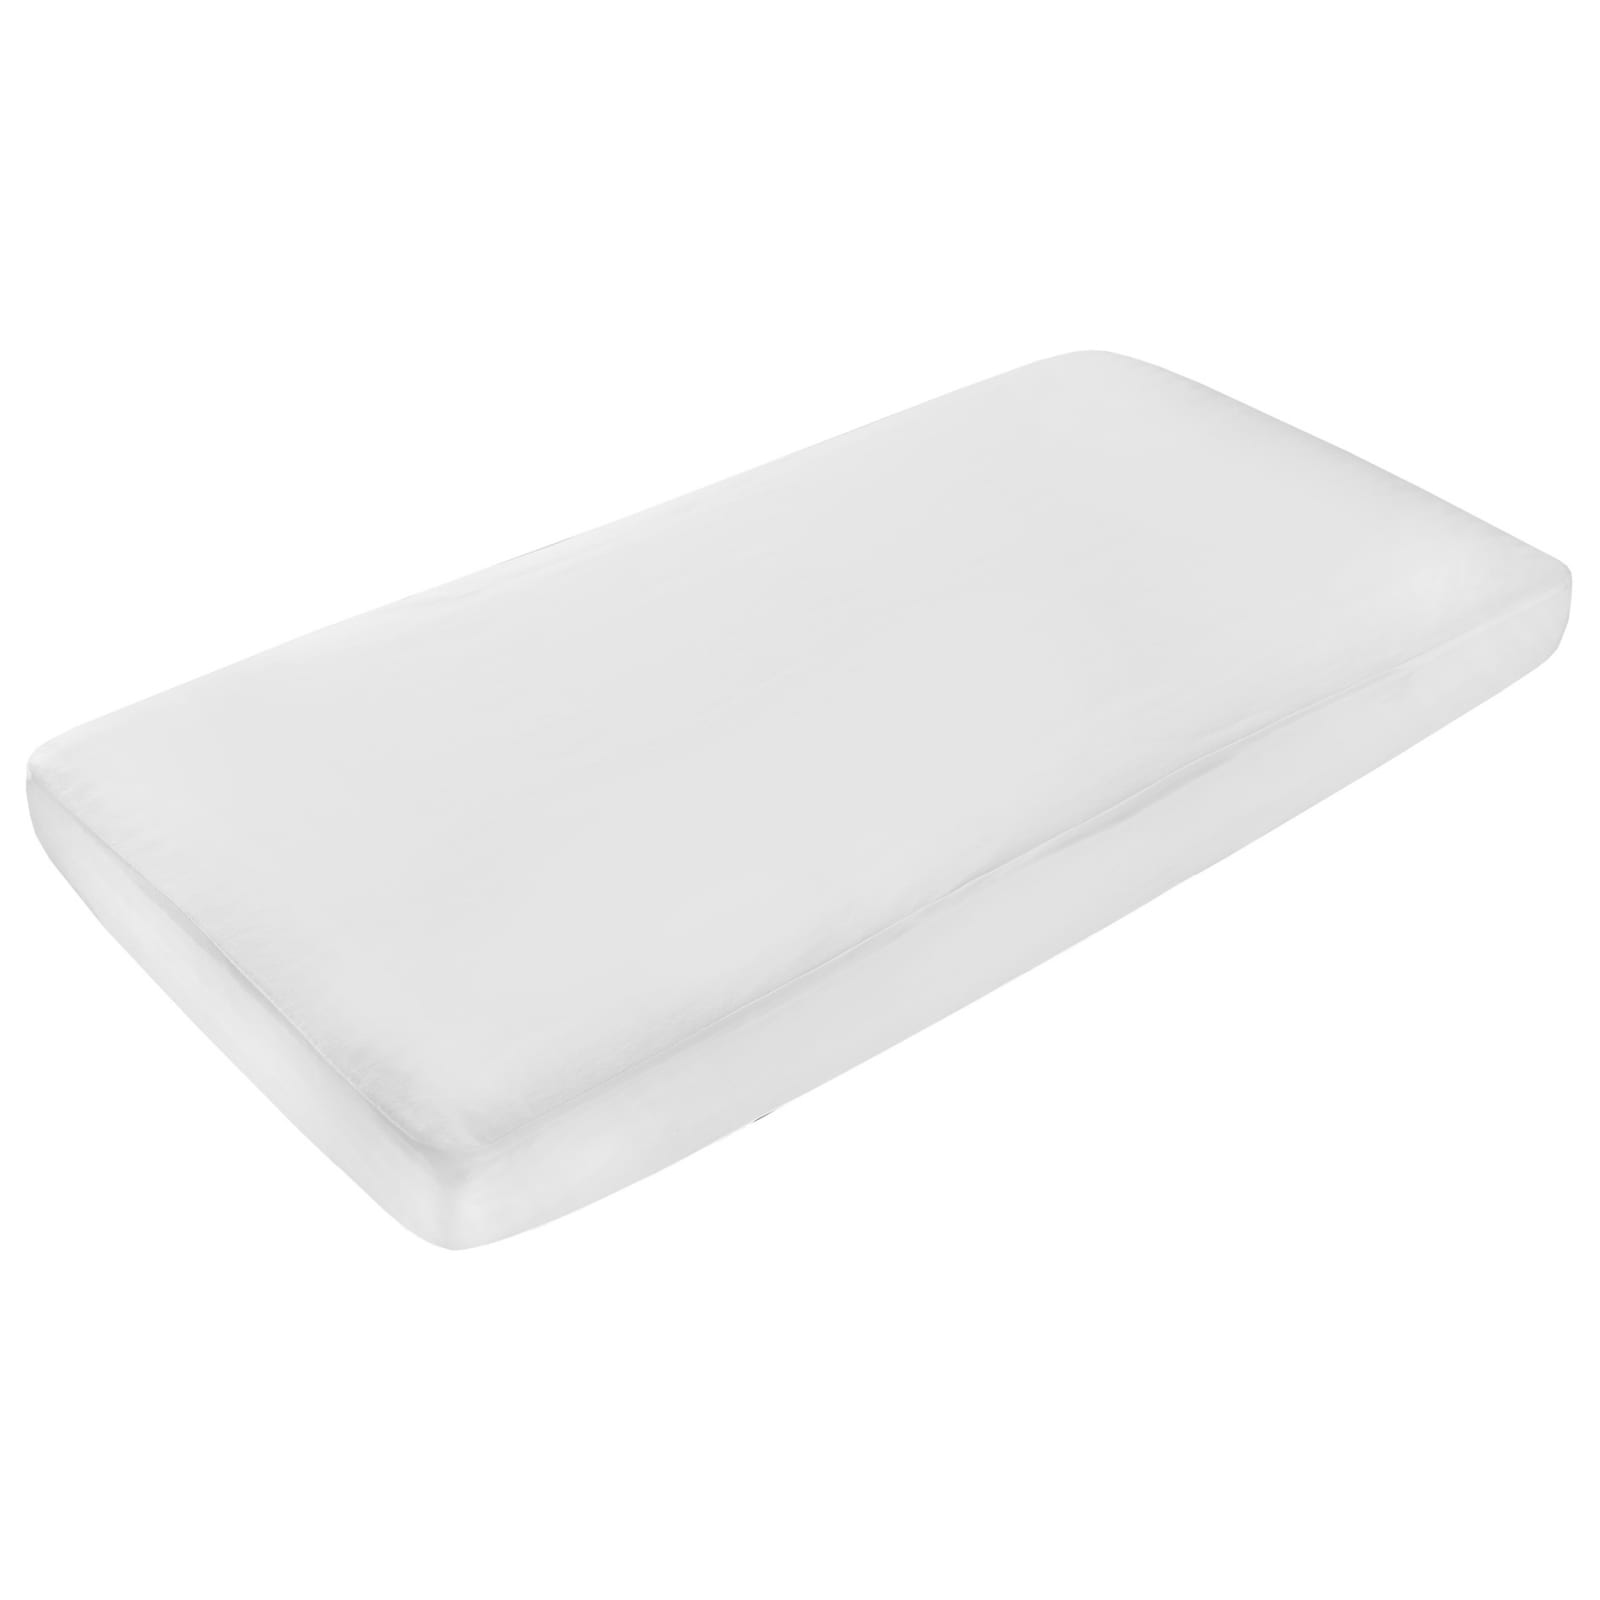 Waterproof Mattress Protector – Cot product image